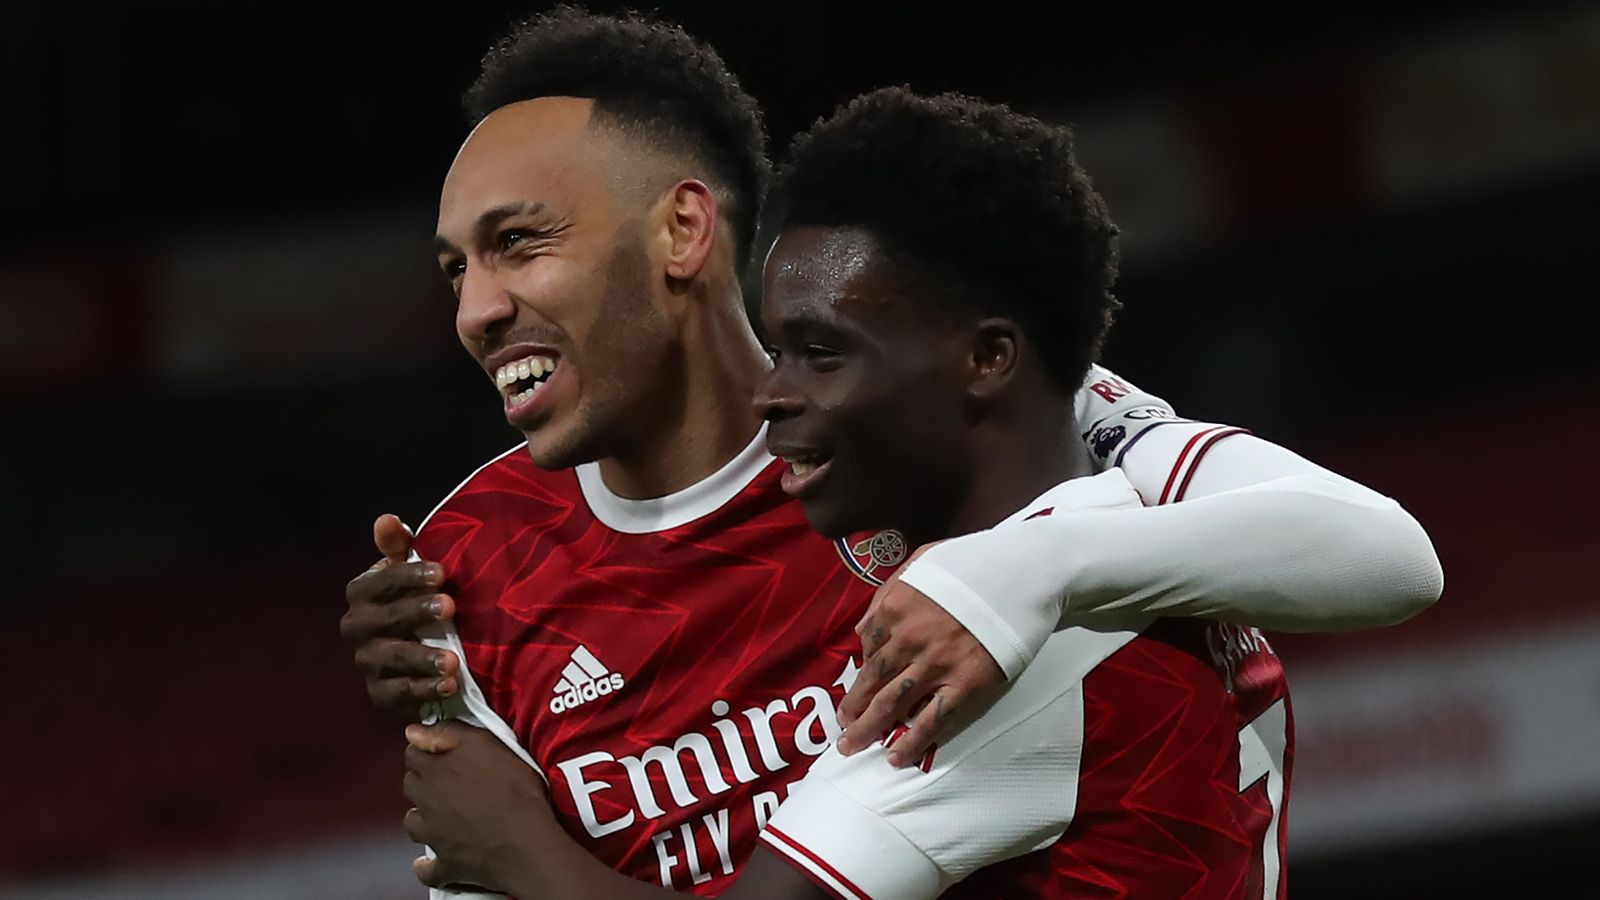 Wolves vs Arsenal preview, team news, prediction, stats, kick-off time